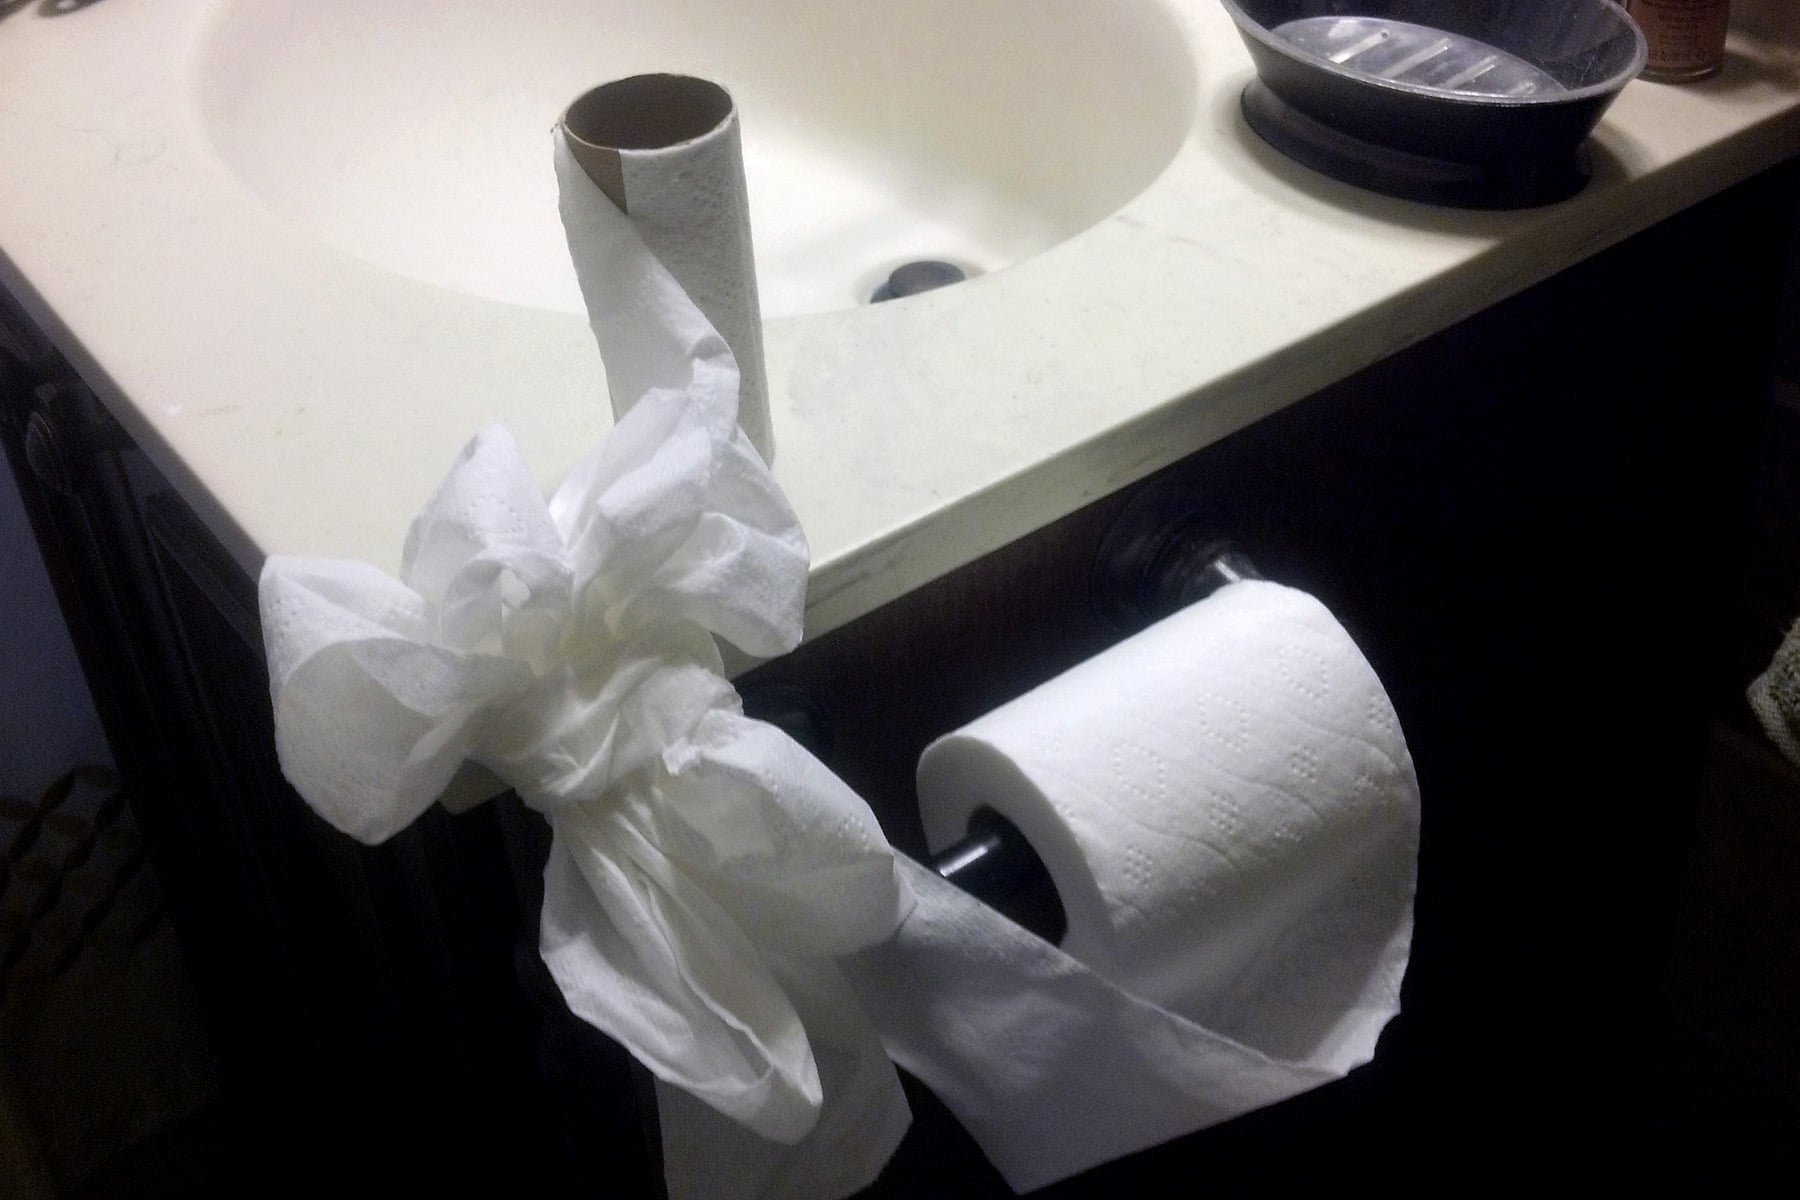 A toilet paper roll tied to an empty roll.